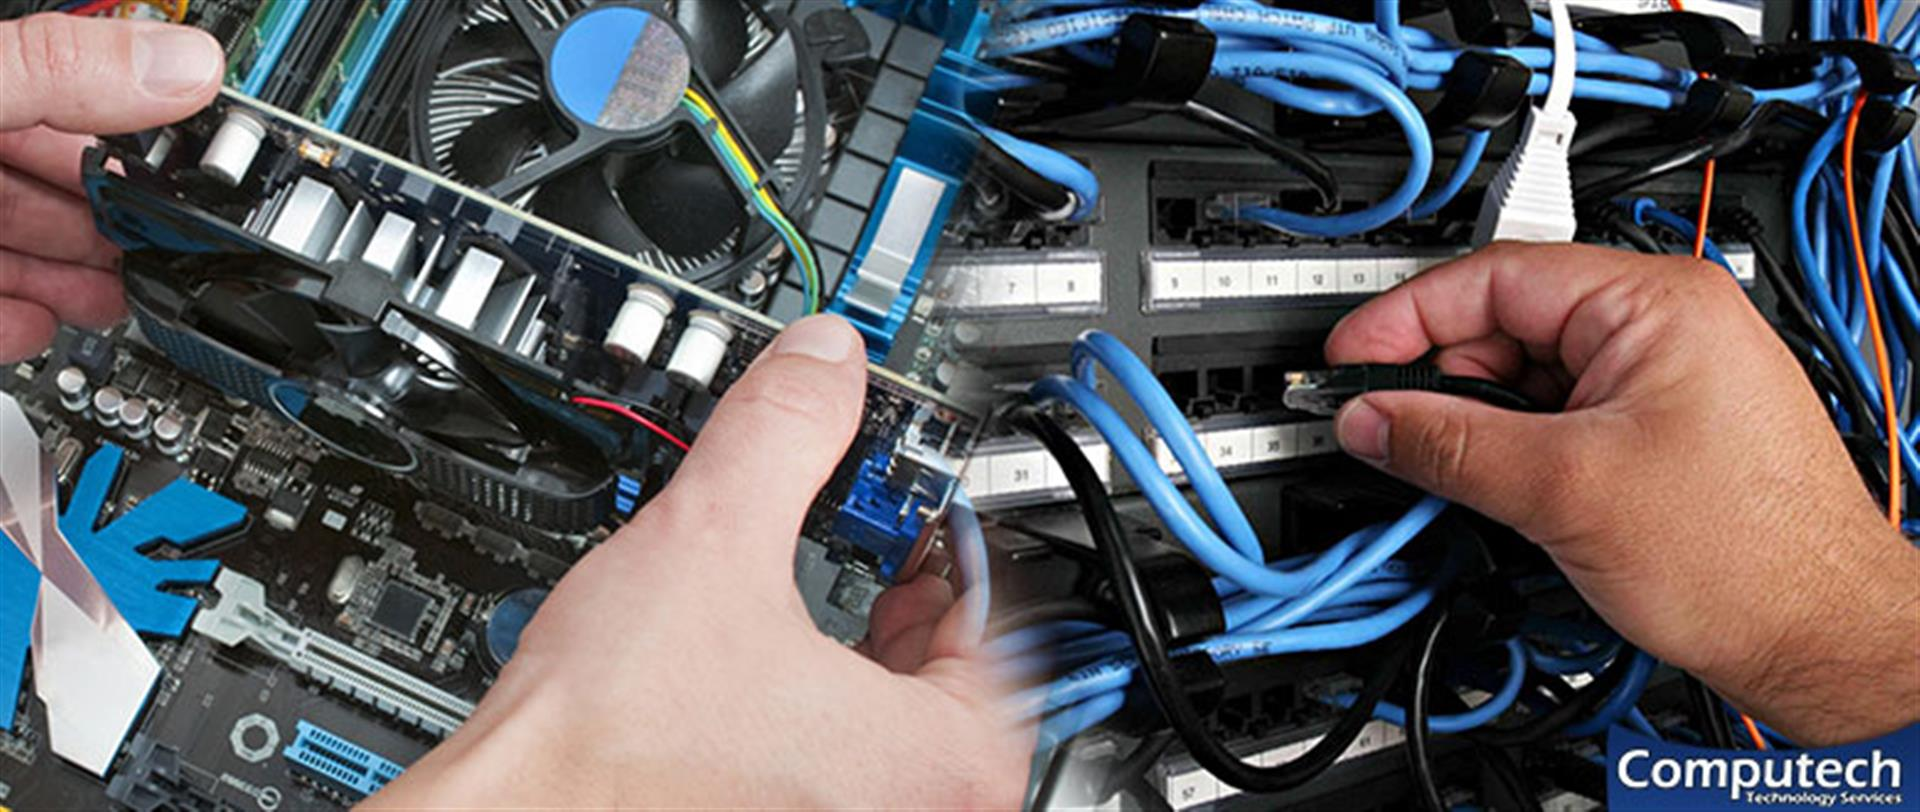 Monterey Tennessee On Site Computer & Printer Repair, Network, Voice & Data Cabling Services